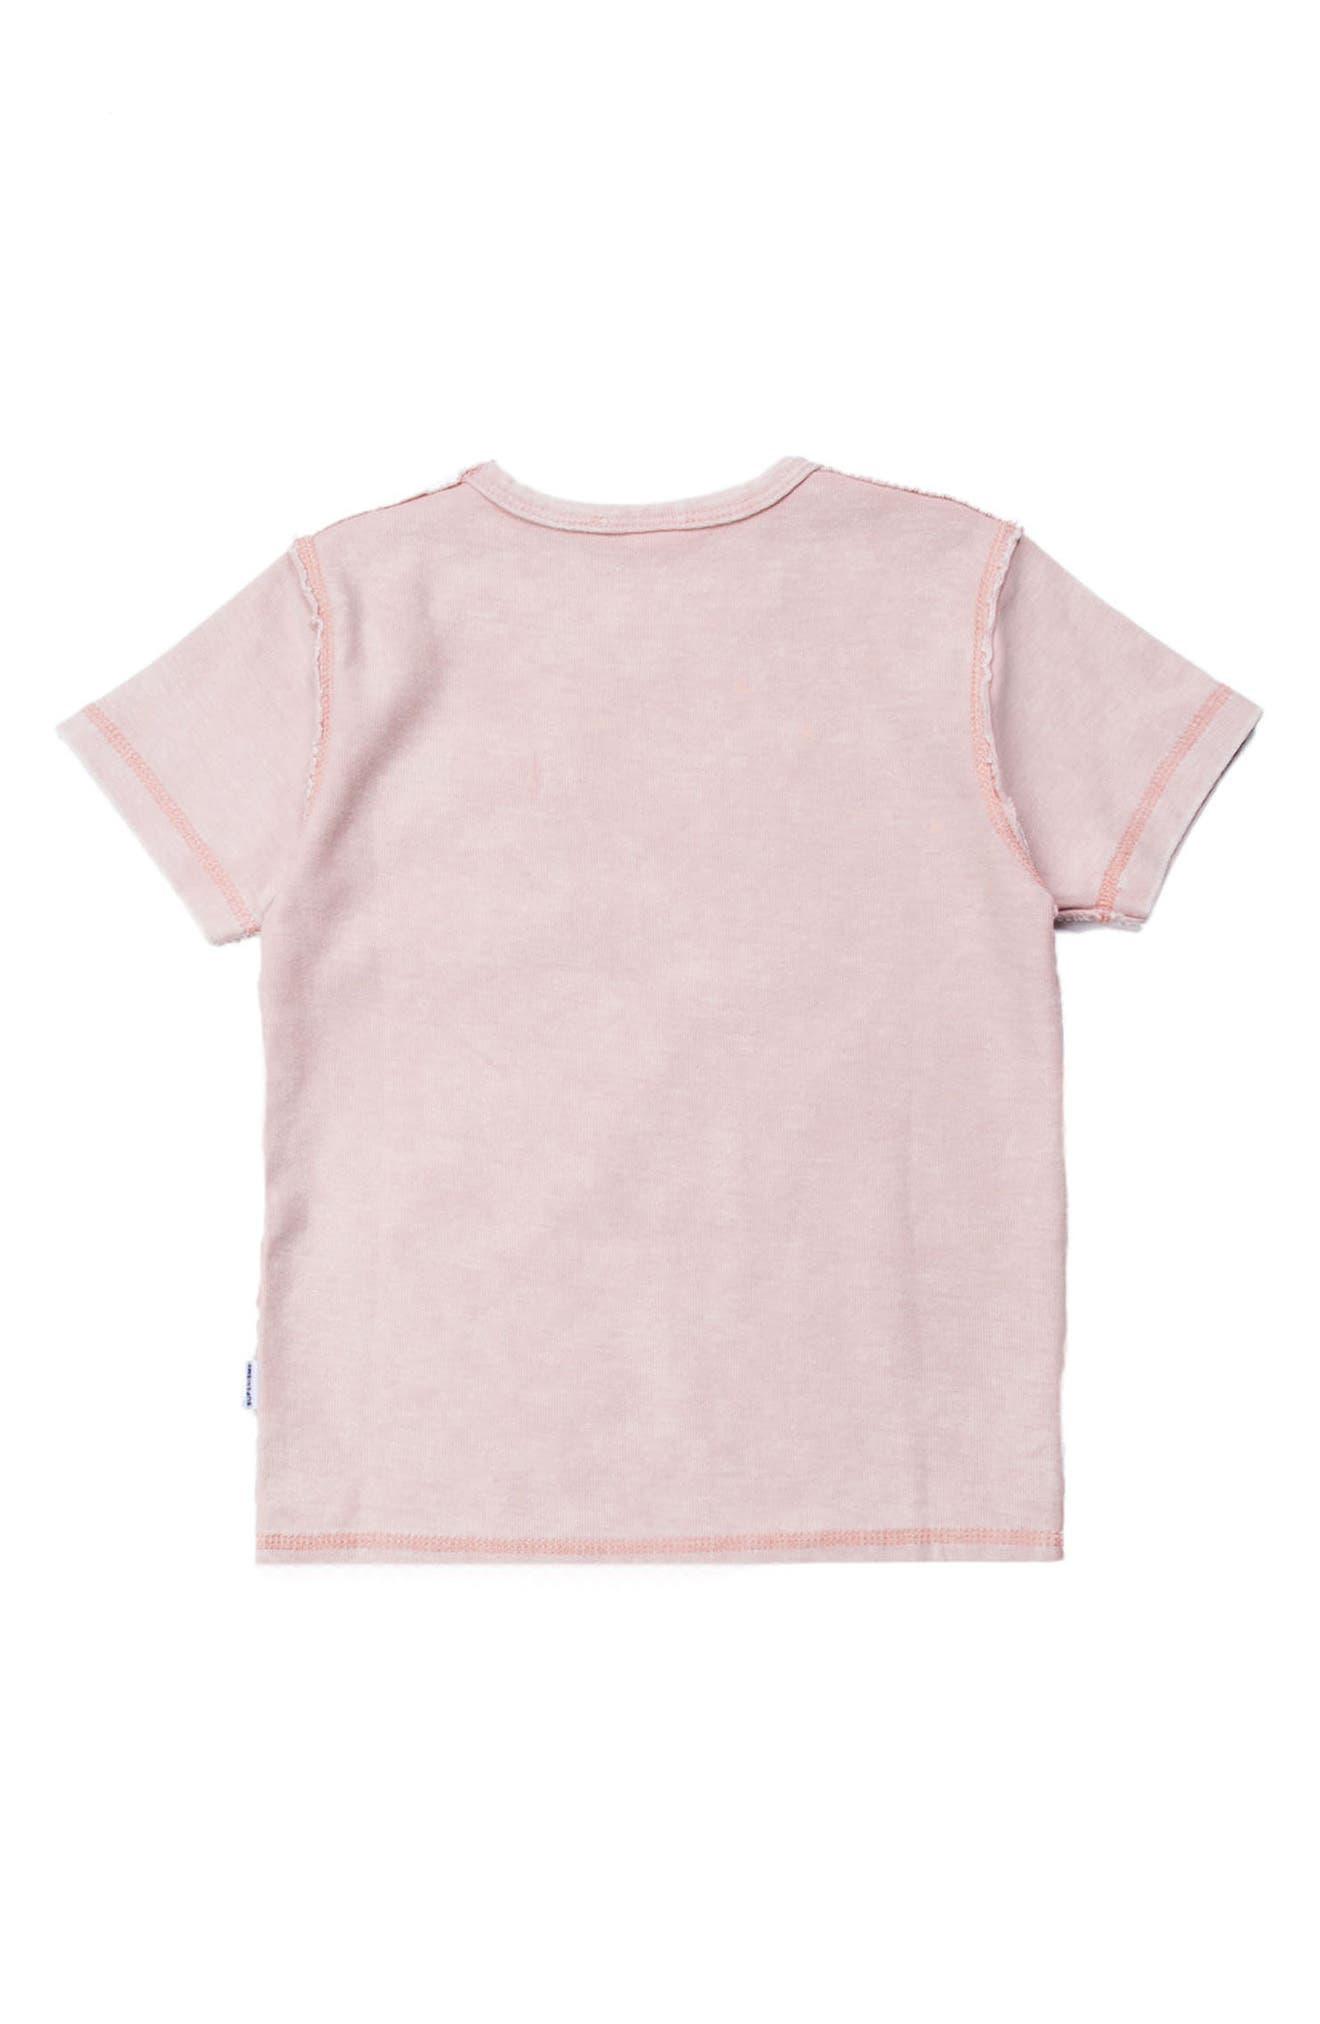 Emery T-Shirt,                             Alternate thumbnail 2, color,                             Pink